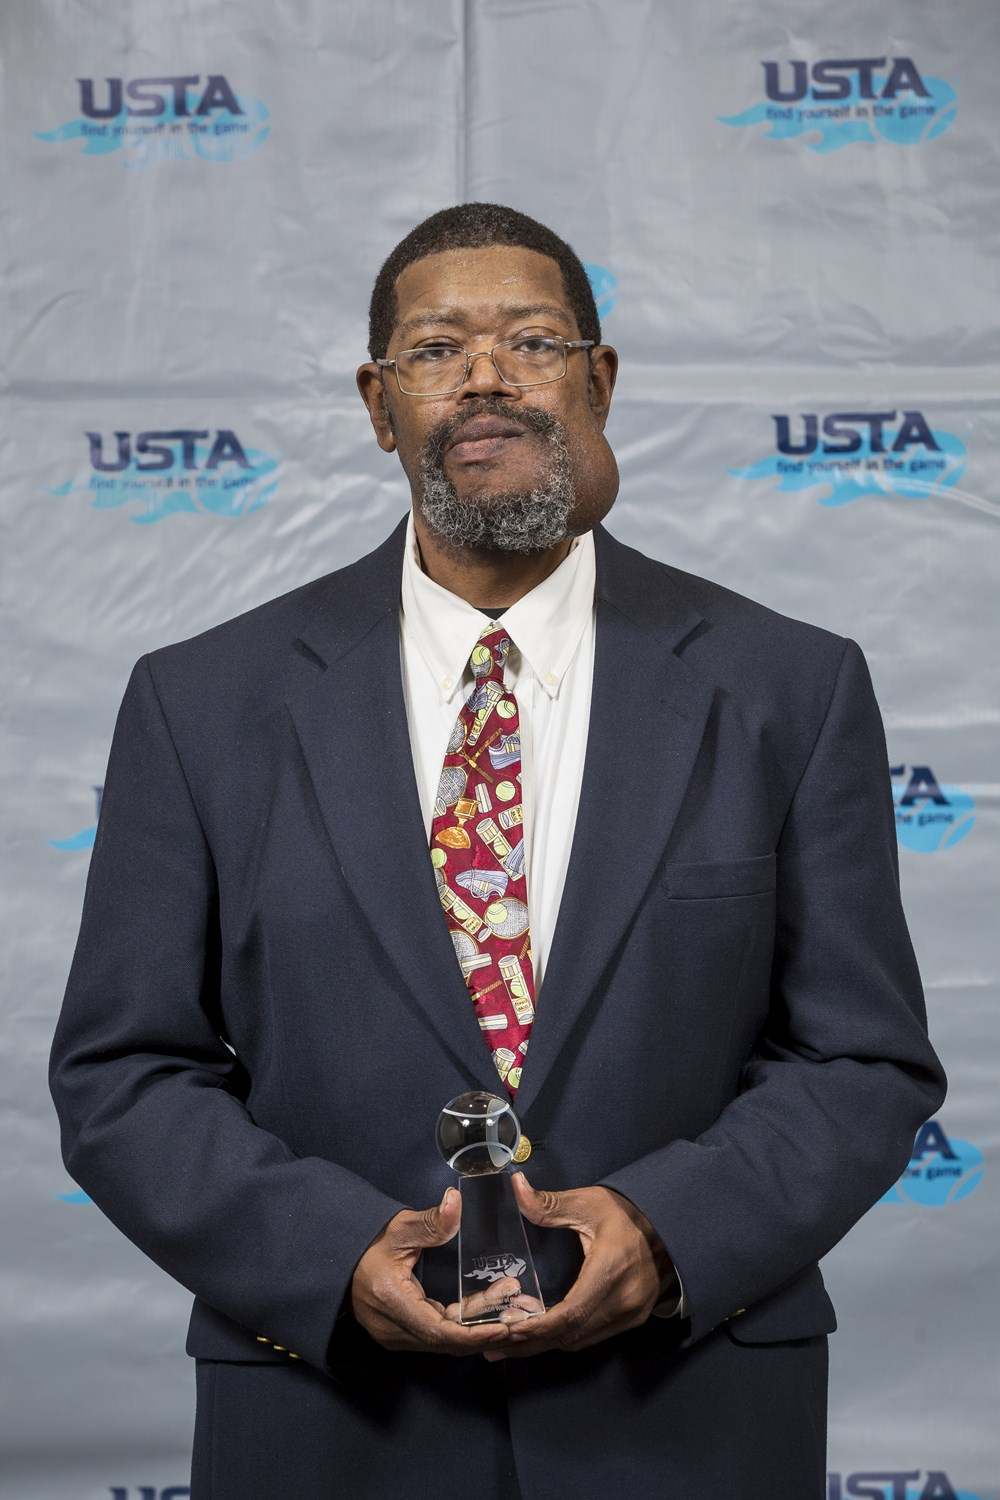 Coach_Winks_NJTL-_2017_USTA_Georgia_NJTL_Chapter_of_the_Year